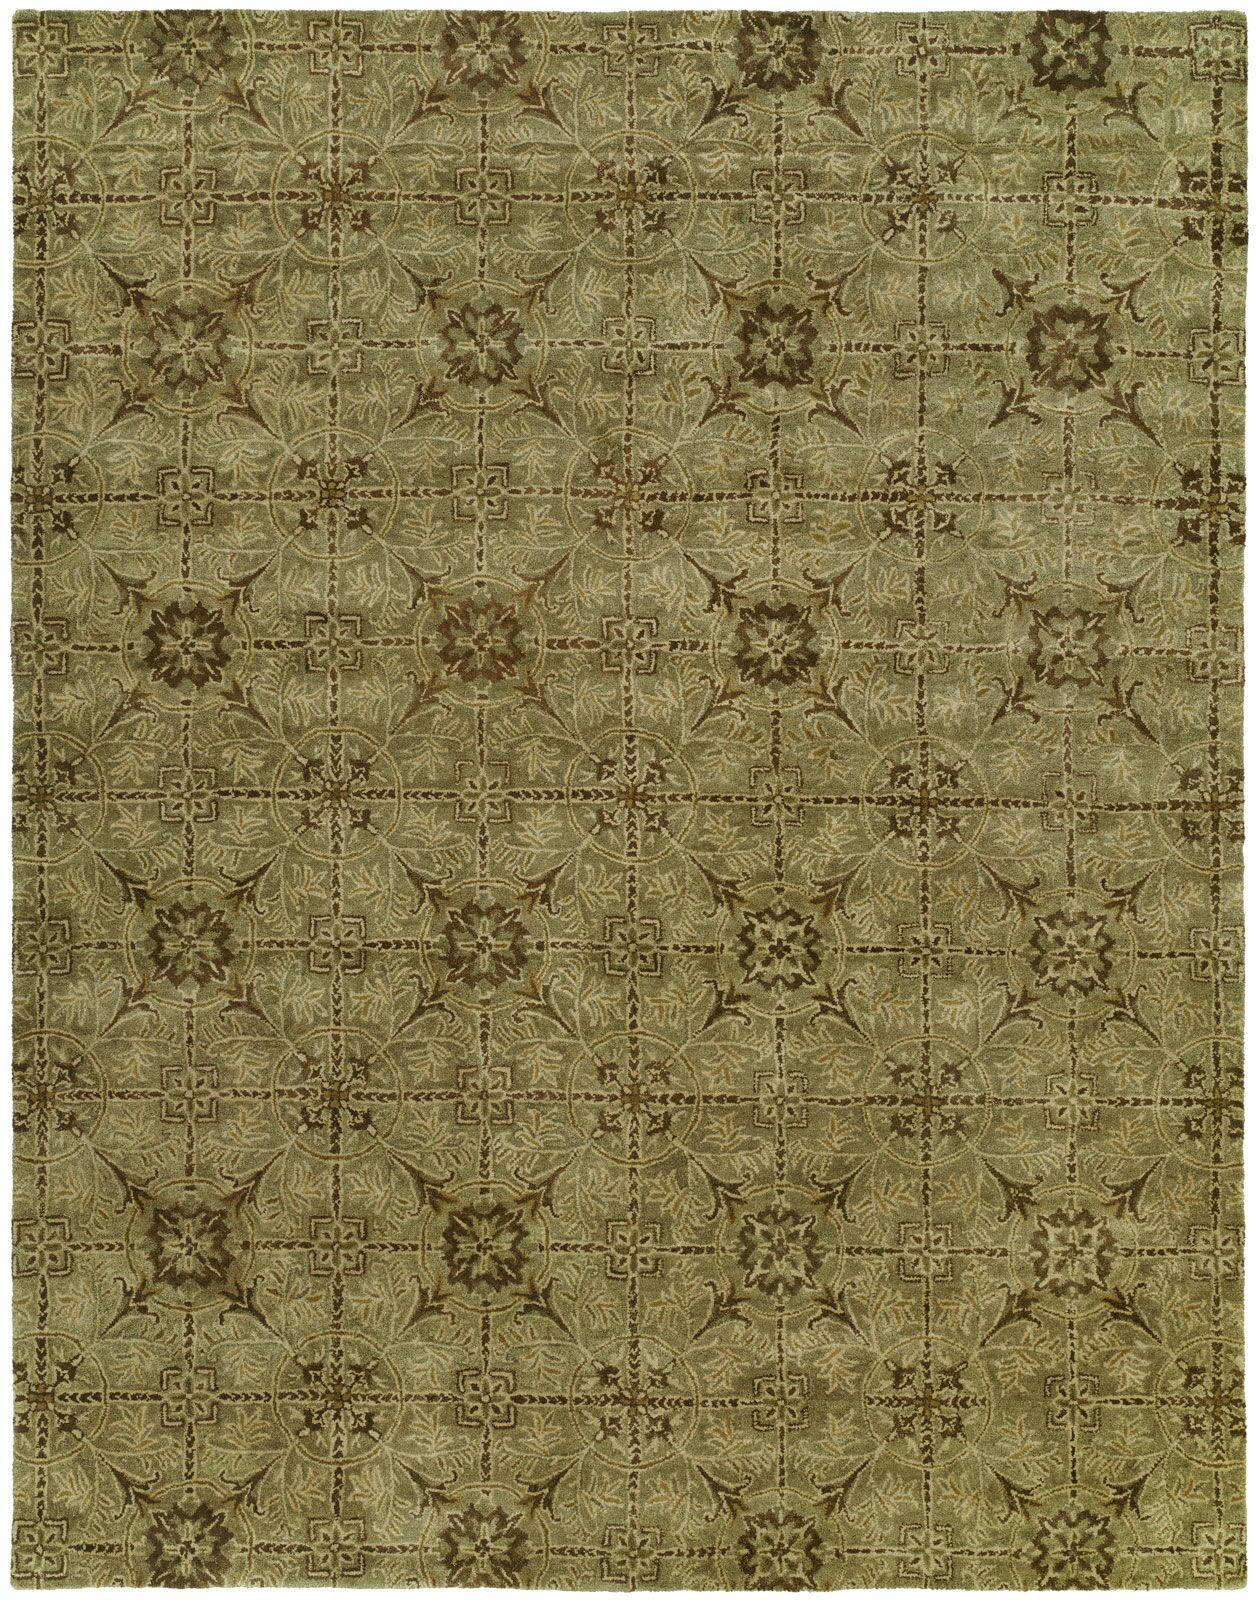 Hand-Tufted Green Area Rug Rug Size: Runner 2'6